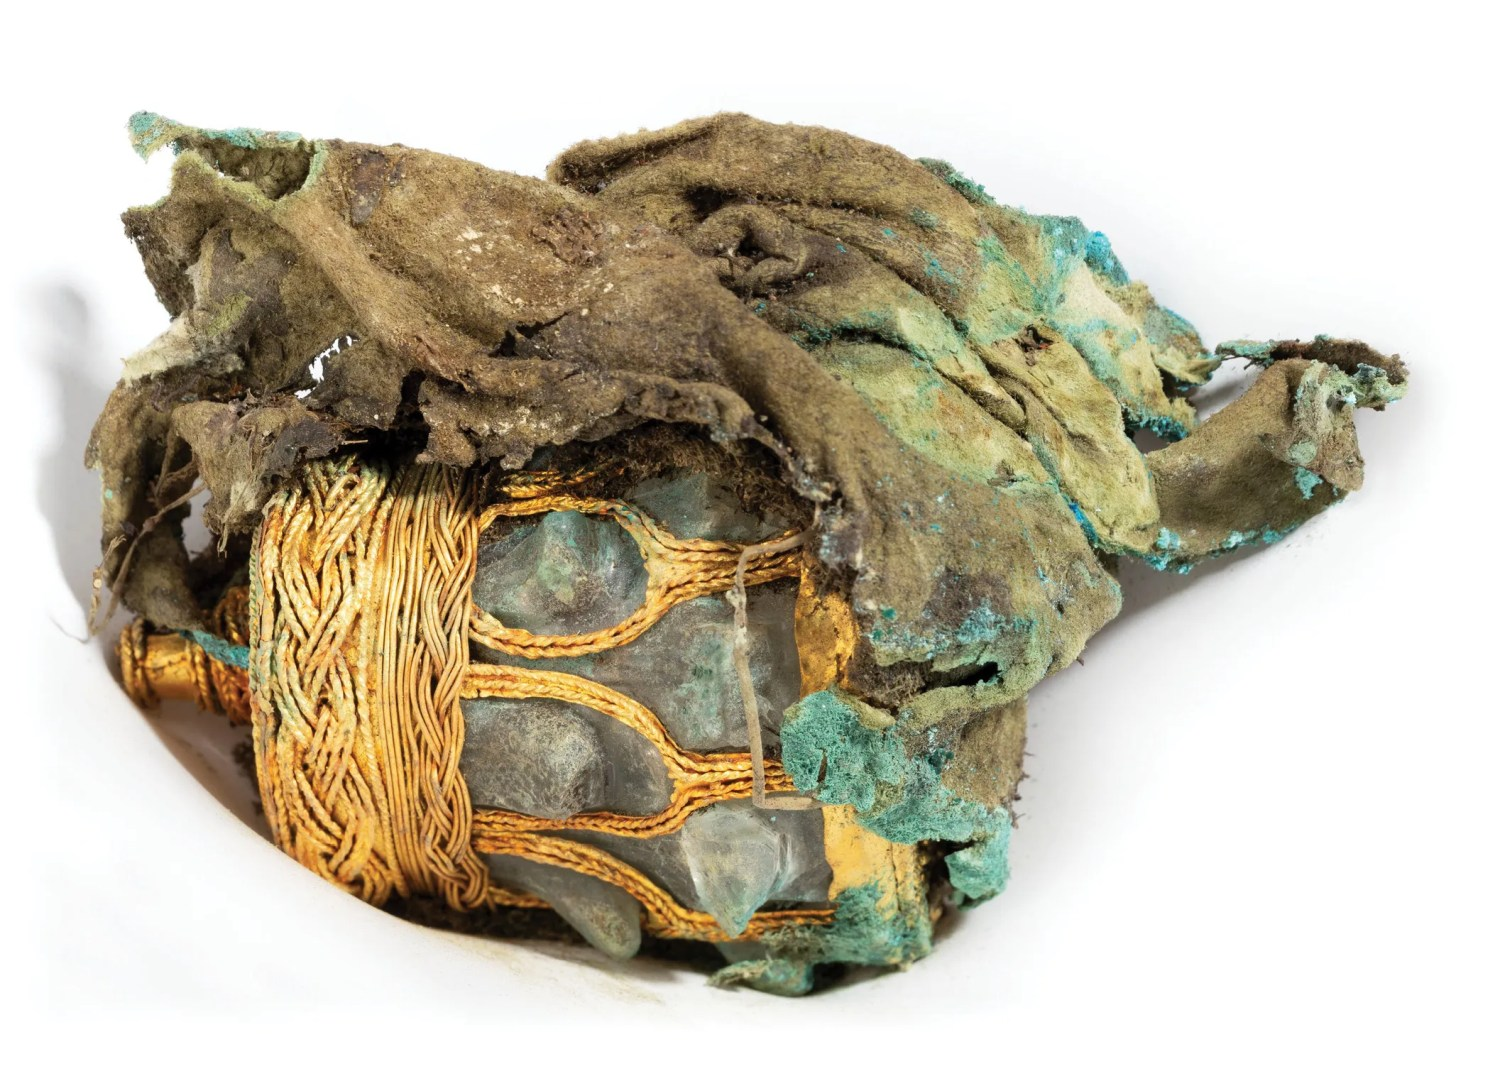 above A rock crystal jar, decorated with gold-filigree ornamentation, from within the Galloway Hoard vessel. The jar is bundled in a leather pouch and layers of textile, fragile materials which mean the object cannot go on view in the exhibition.